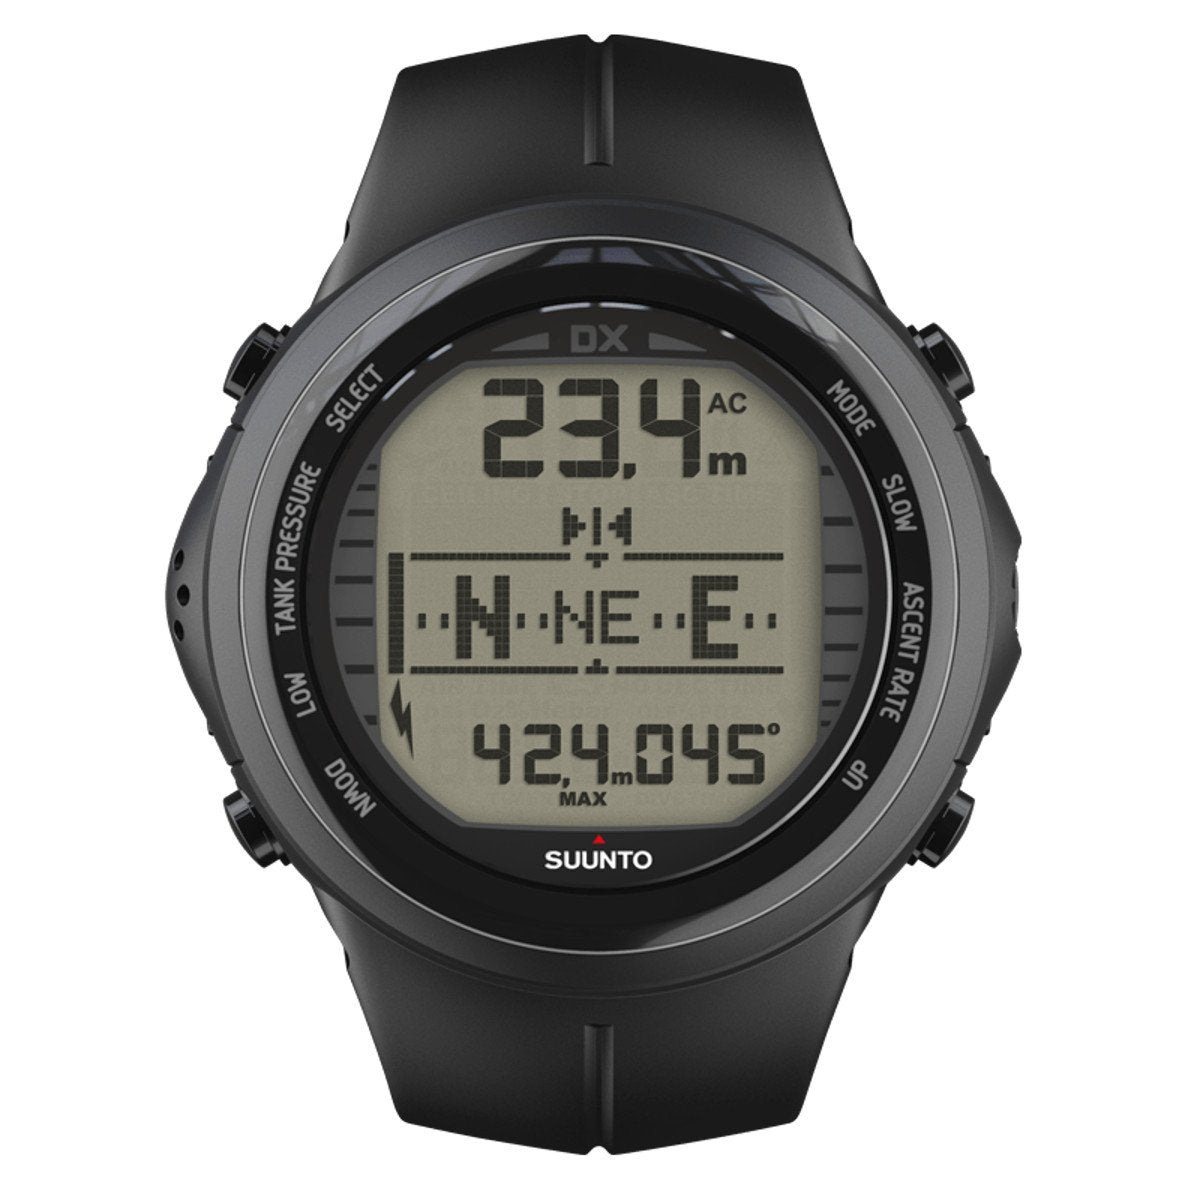 Suunto DX Black dive computer | Oyster Diving - Oyster ...